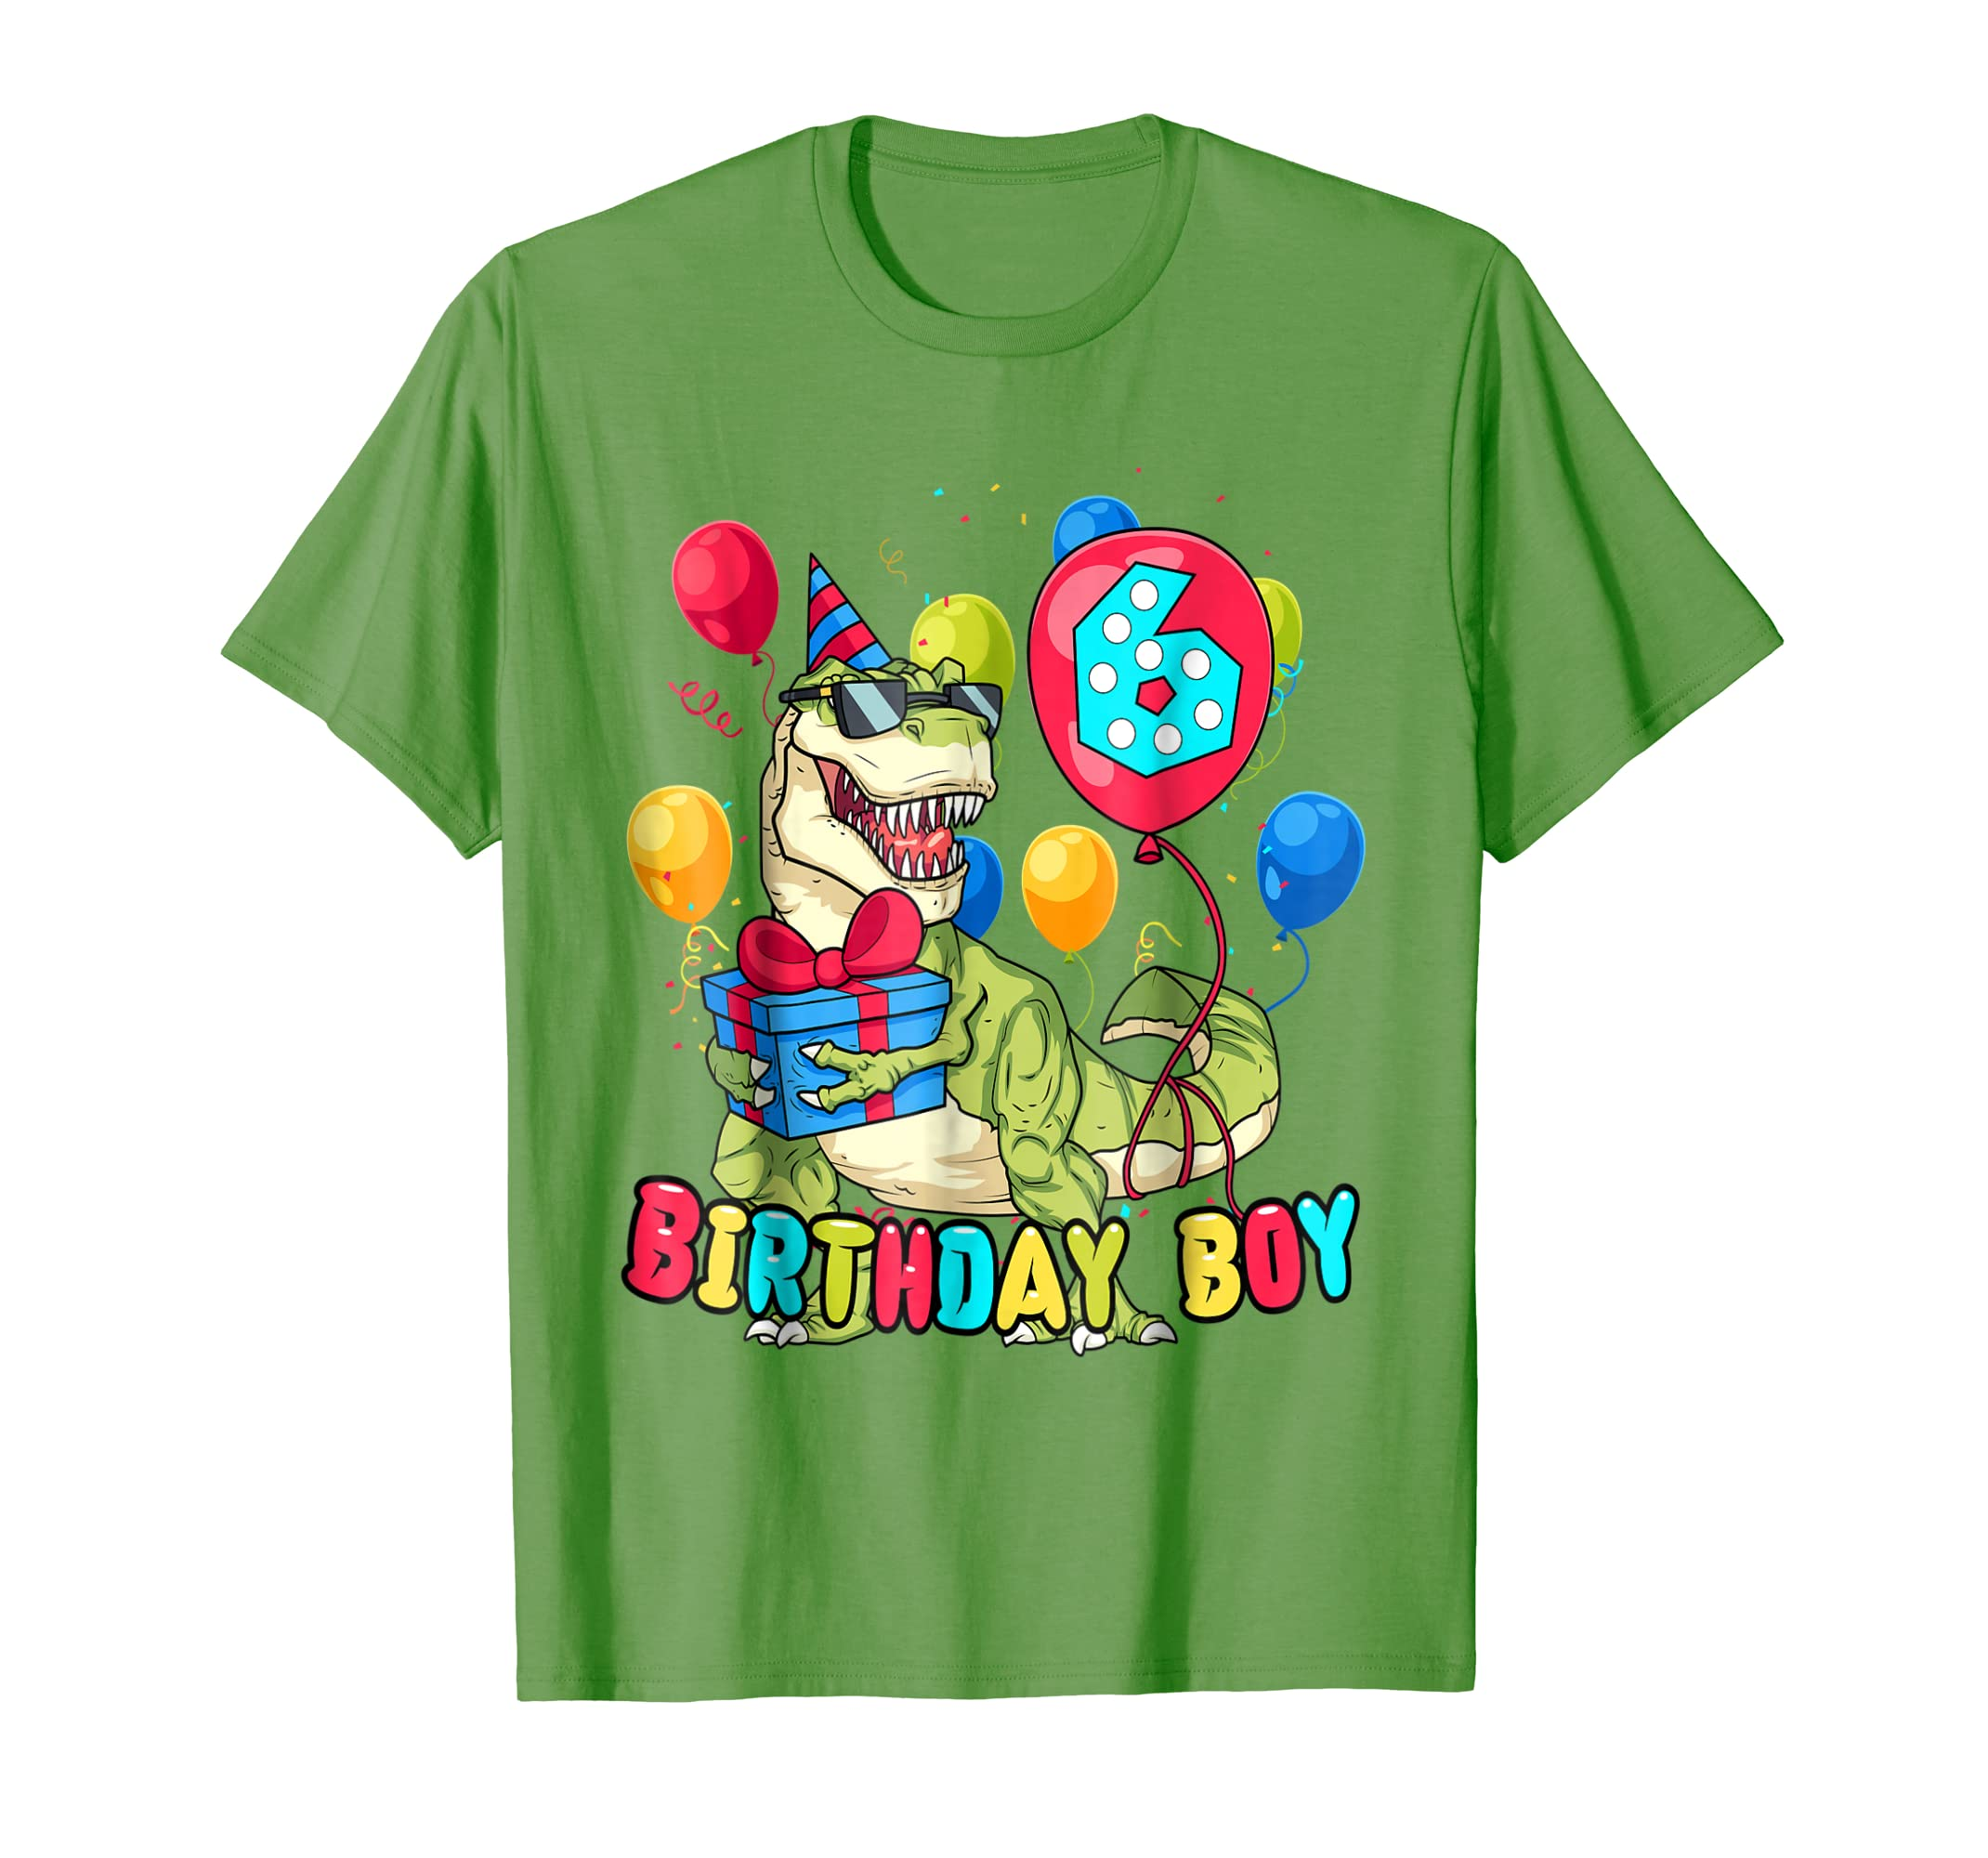 It's My 6TH Birthday Shirt Dinosaur Party For 6 YEAR Old